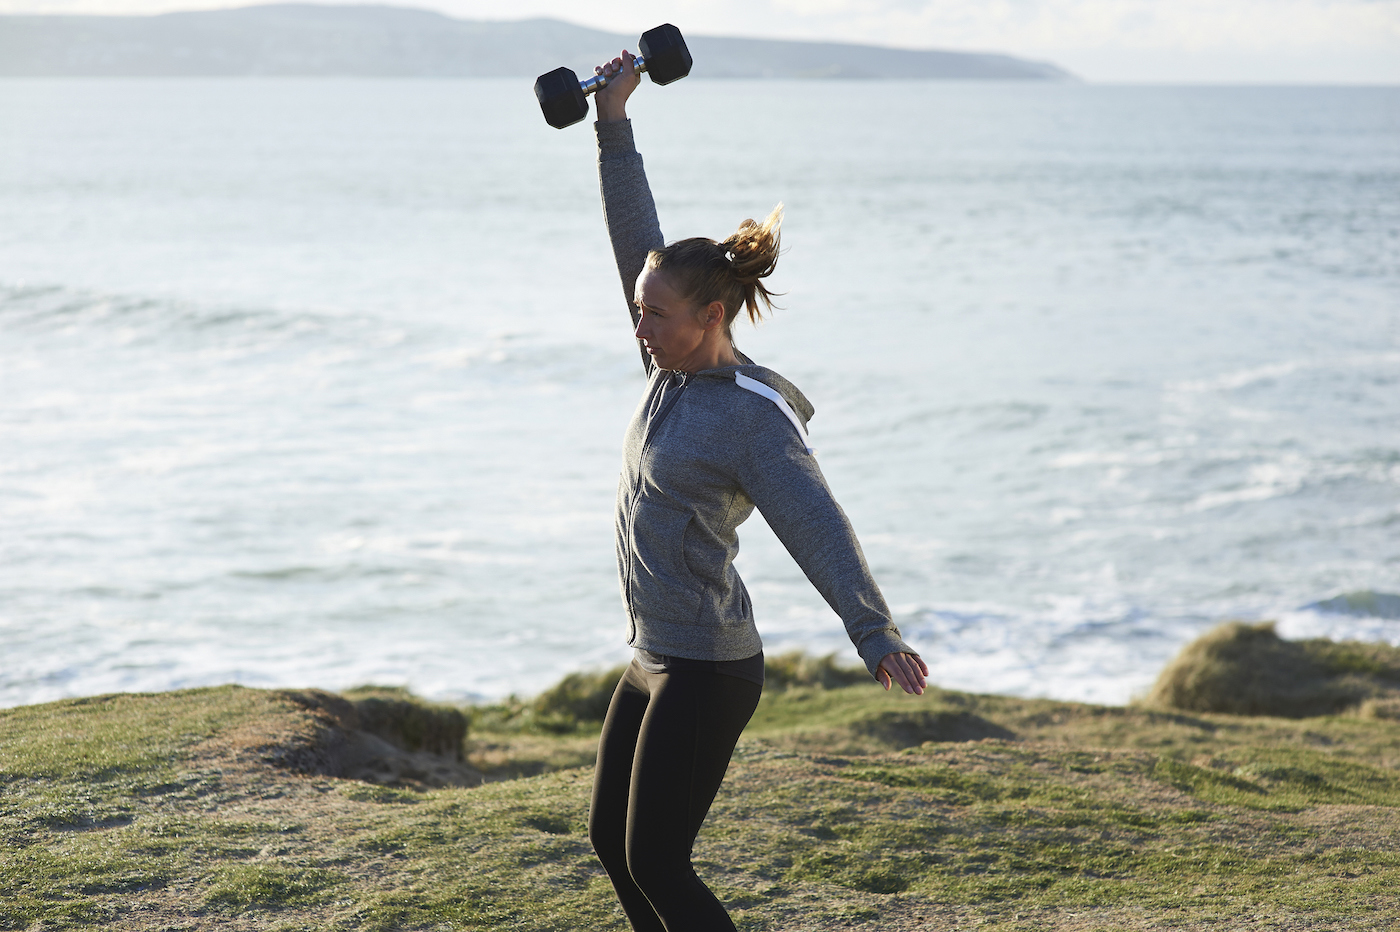 Thumbnail for The Dumbbell Power Snatch Is One of the Best Full-Body Exercises for Strength and Agility